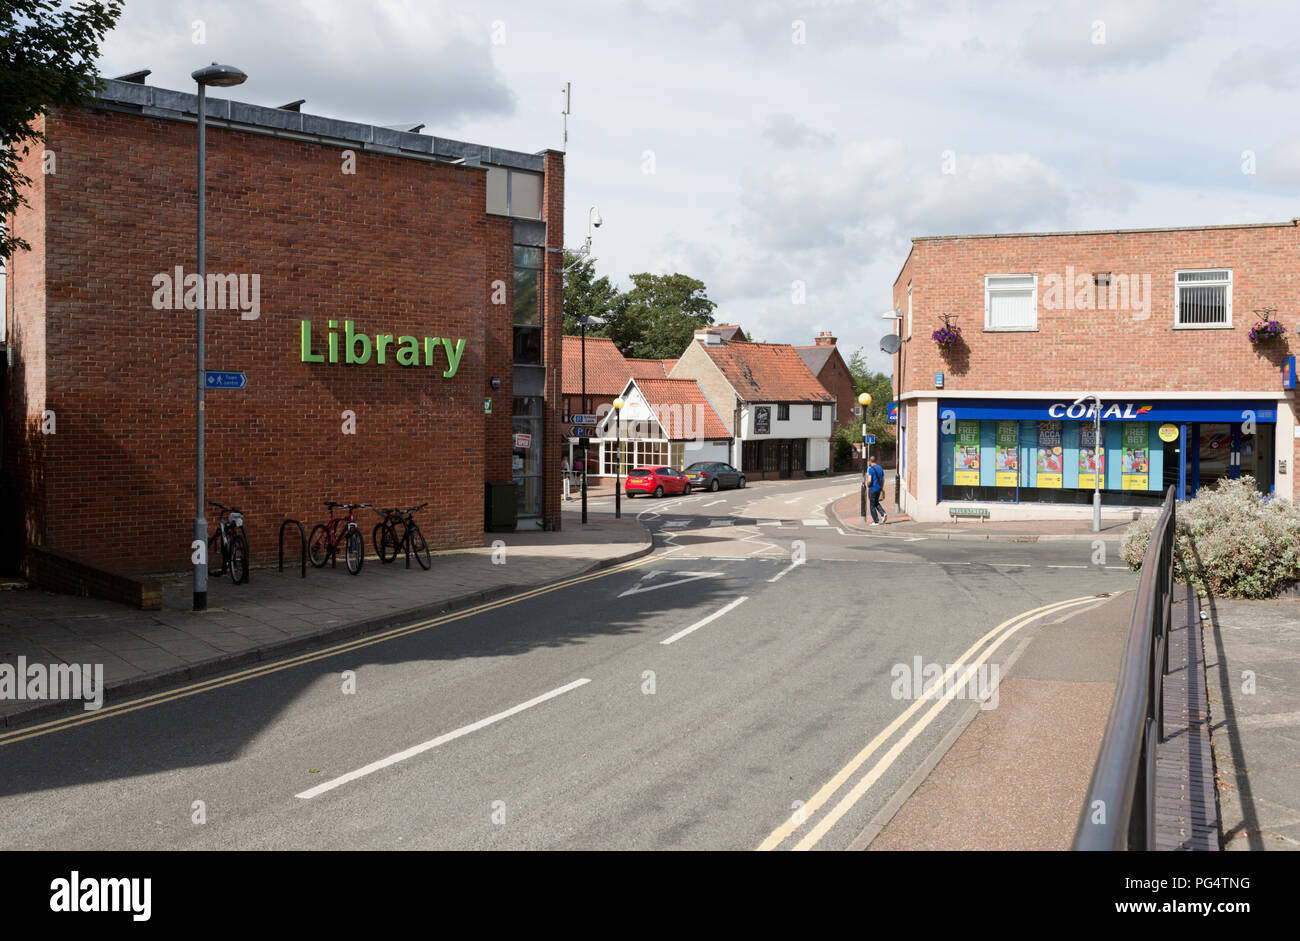 Thetford Library, Raymond Street, Thetford, looking to Tanner Street. Unsharpened - Stock Image